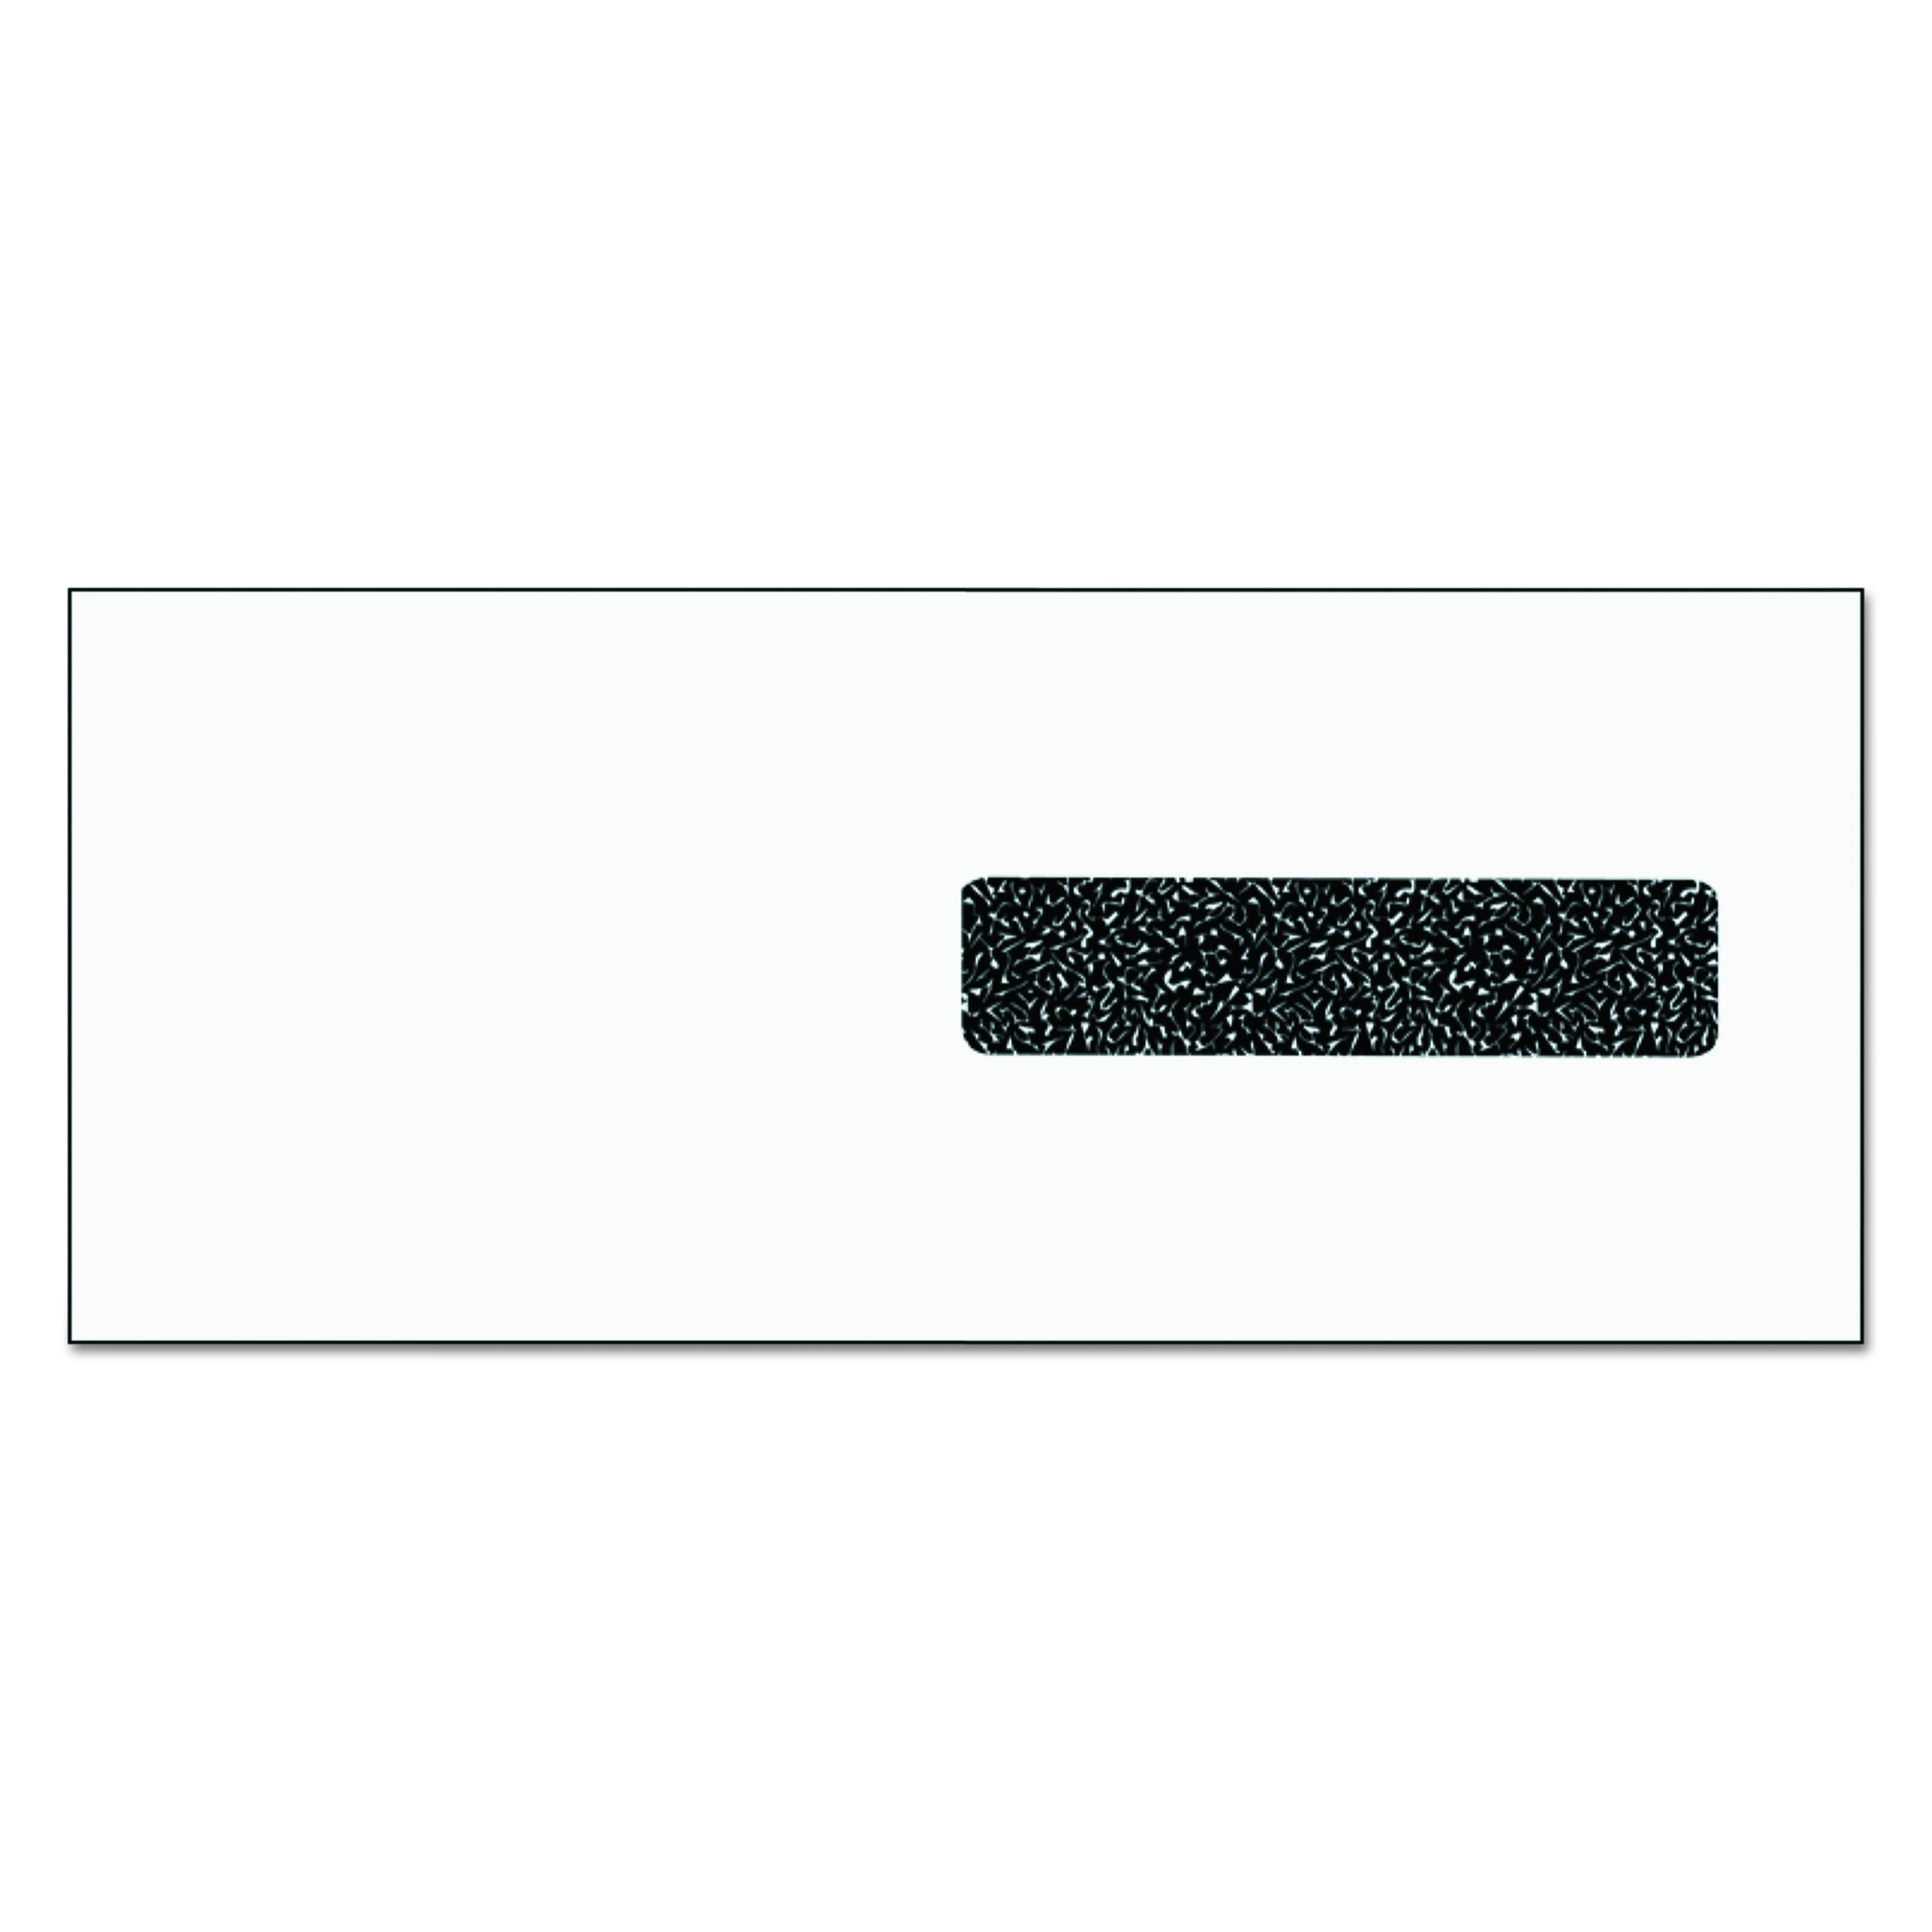 TOPS 50941 CMS 1500 Claim Form Self-Seal Window Envelope, 4 1/8 x 9 1/2, White (Case of 2500)